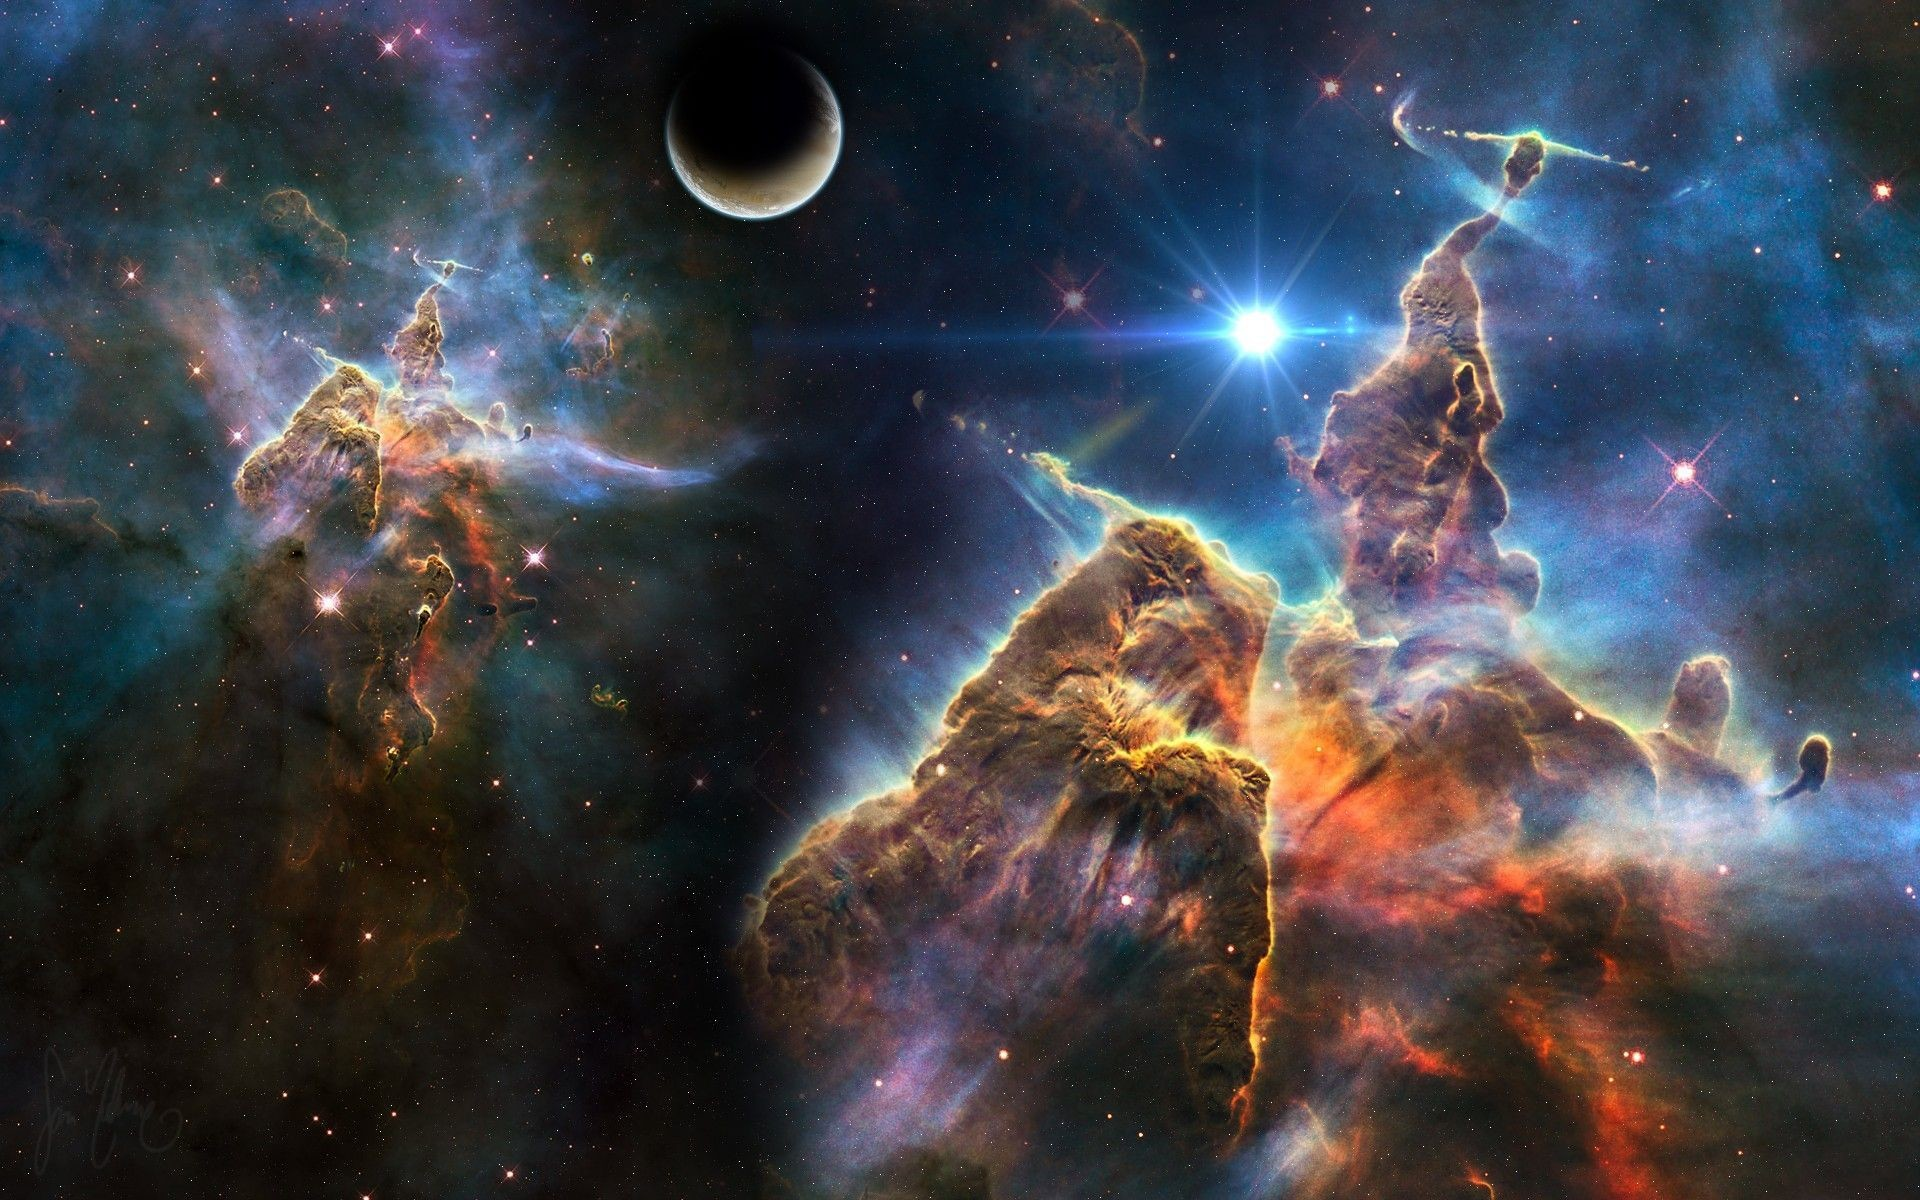 Trippy Space wallpapers photo